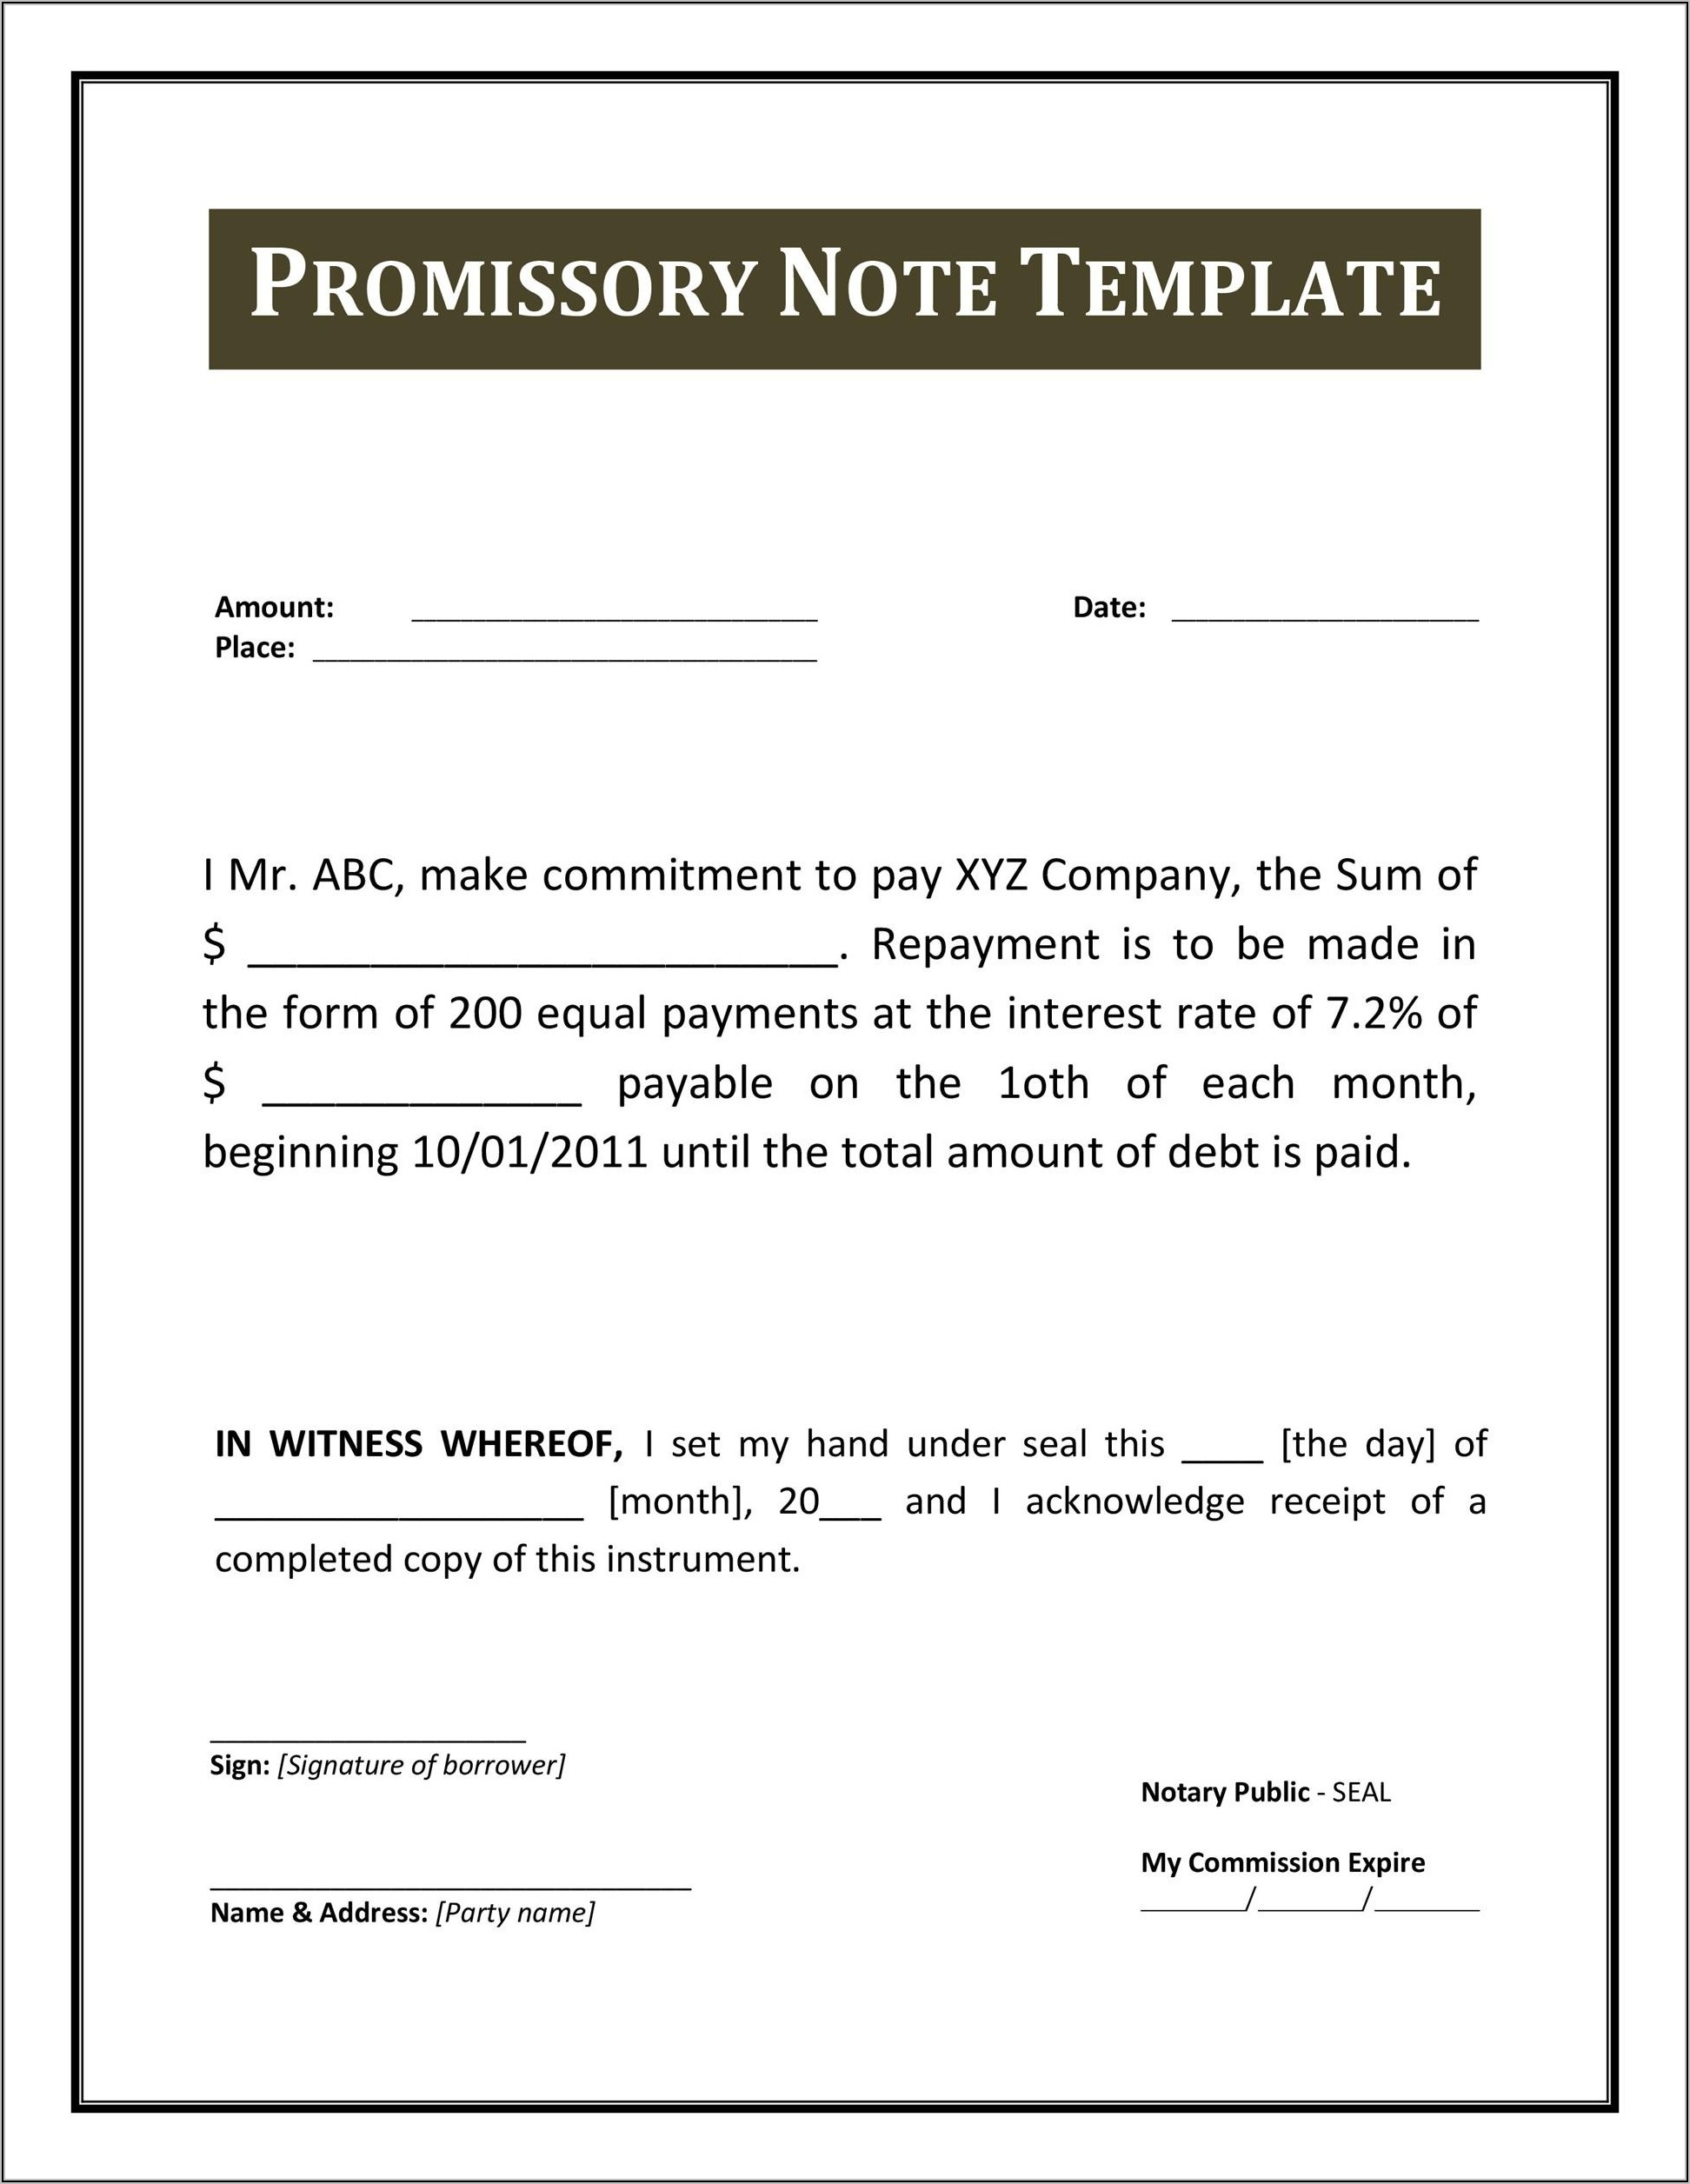 Promissory Note Template Word 2007